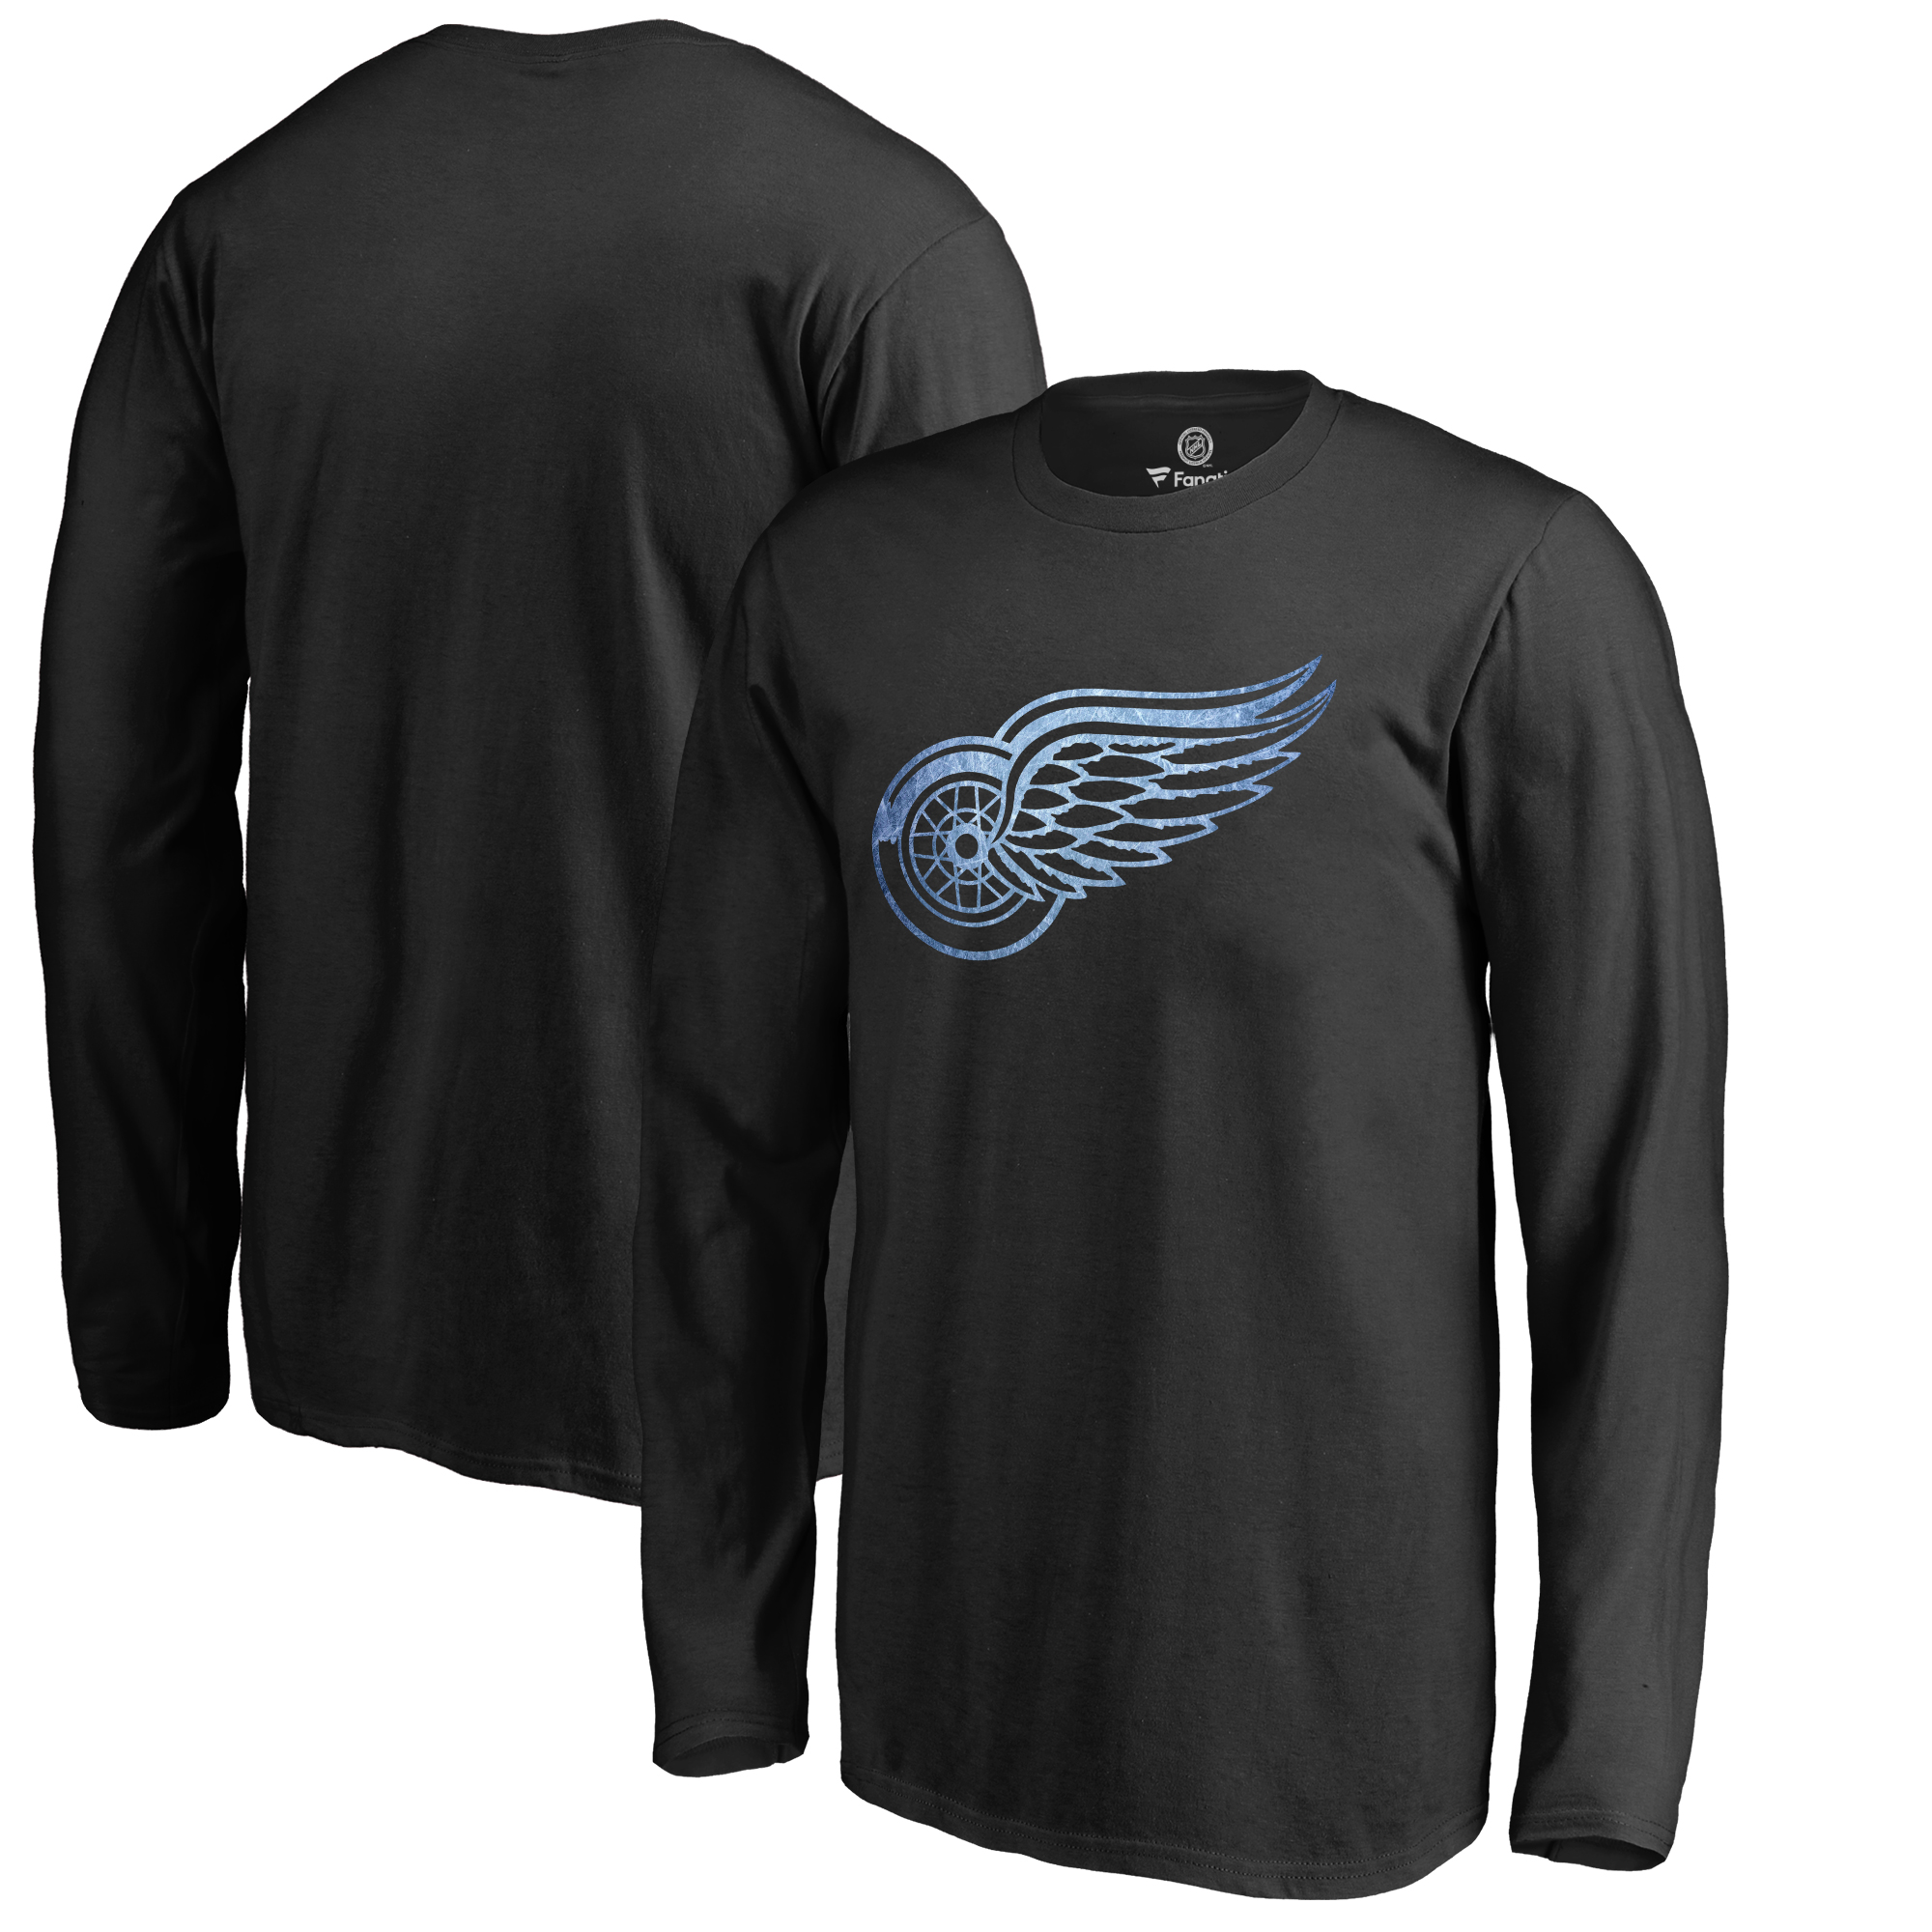 Detroit Red Wings Youth Pond Hockey Long Sleeve T-Shirt Black by Football Fanatics/Ruppshirts